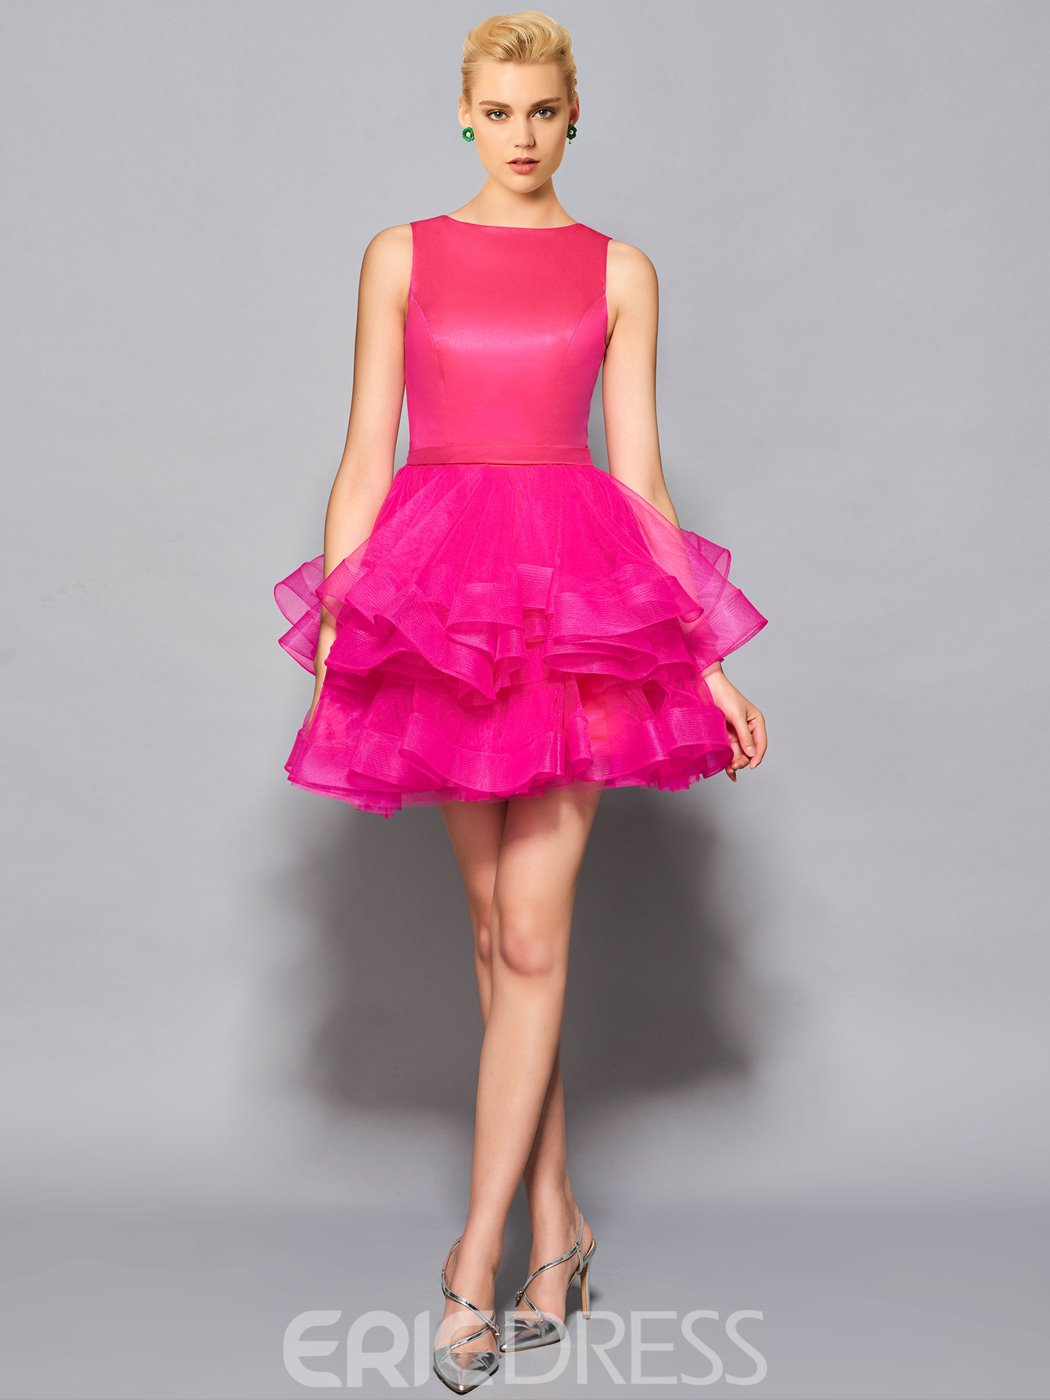 Ericdress Short/Mini Scoop Neck Pufffles Ball Cocktail Dress